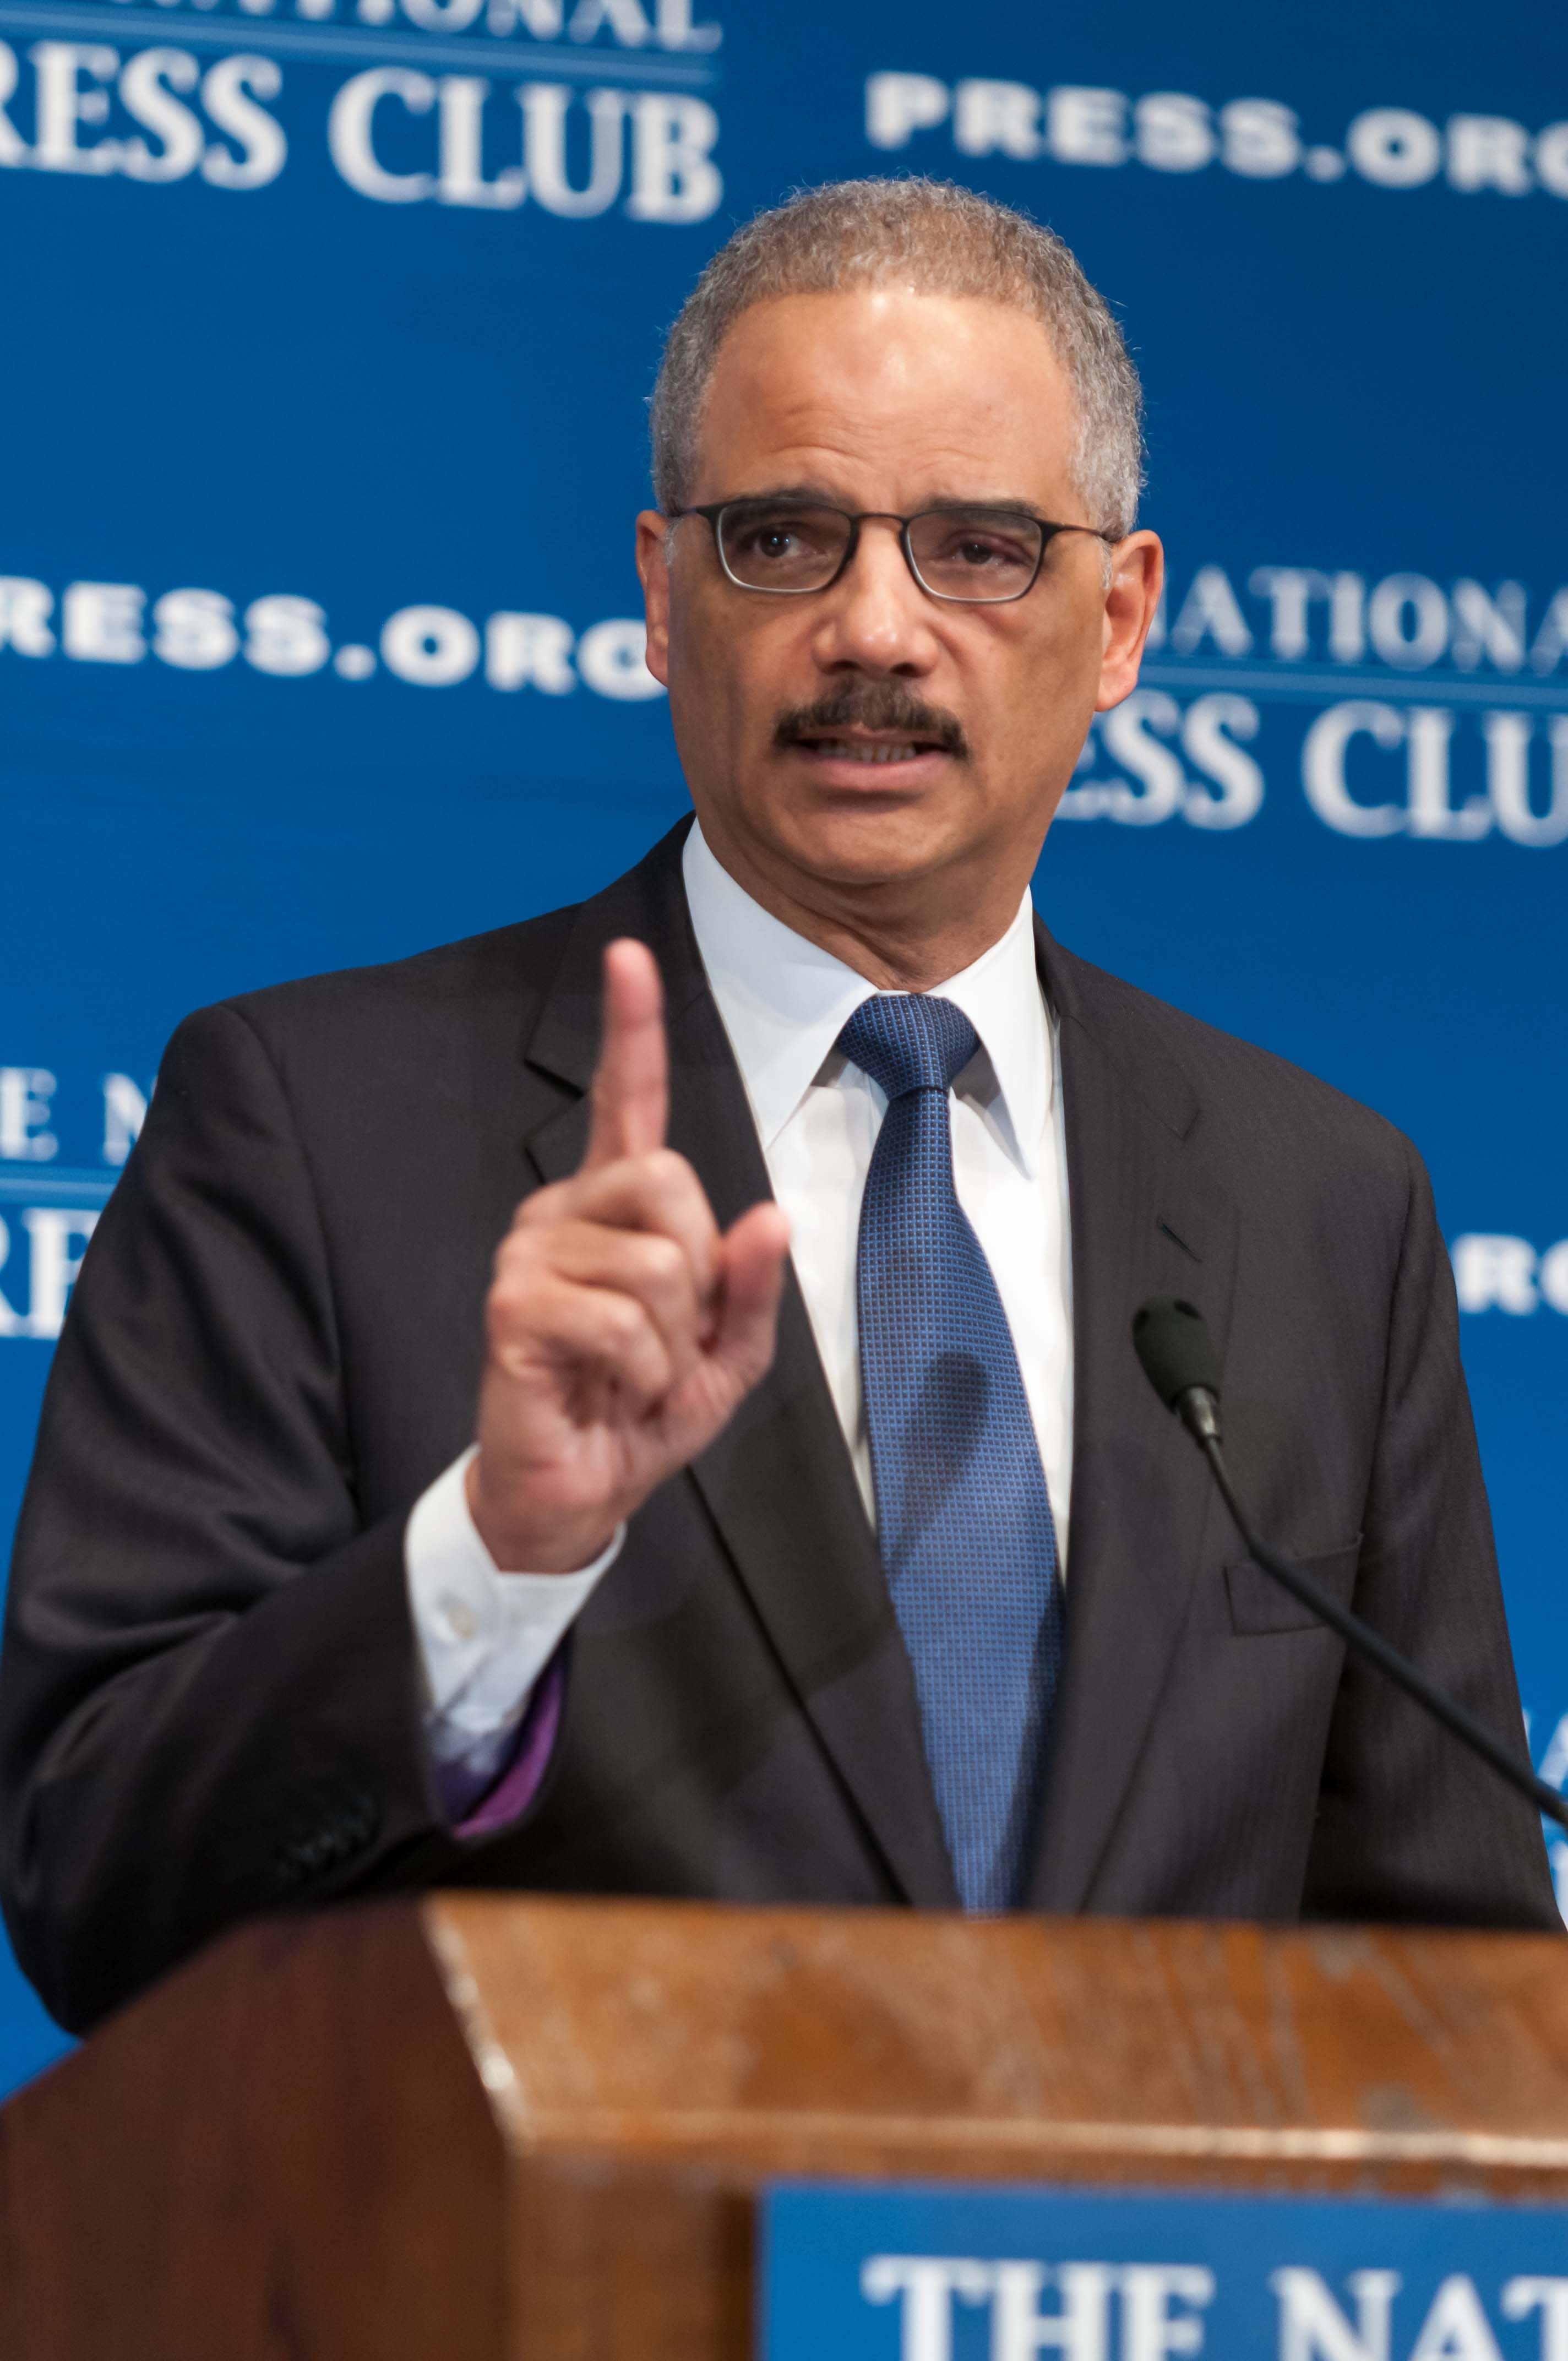 Eric Holder NPC Noel St. John 2 Feb. 17, 2015